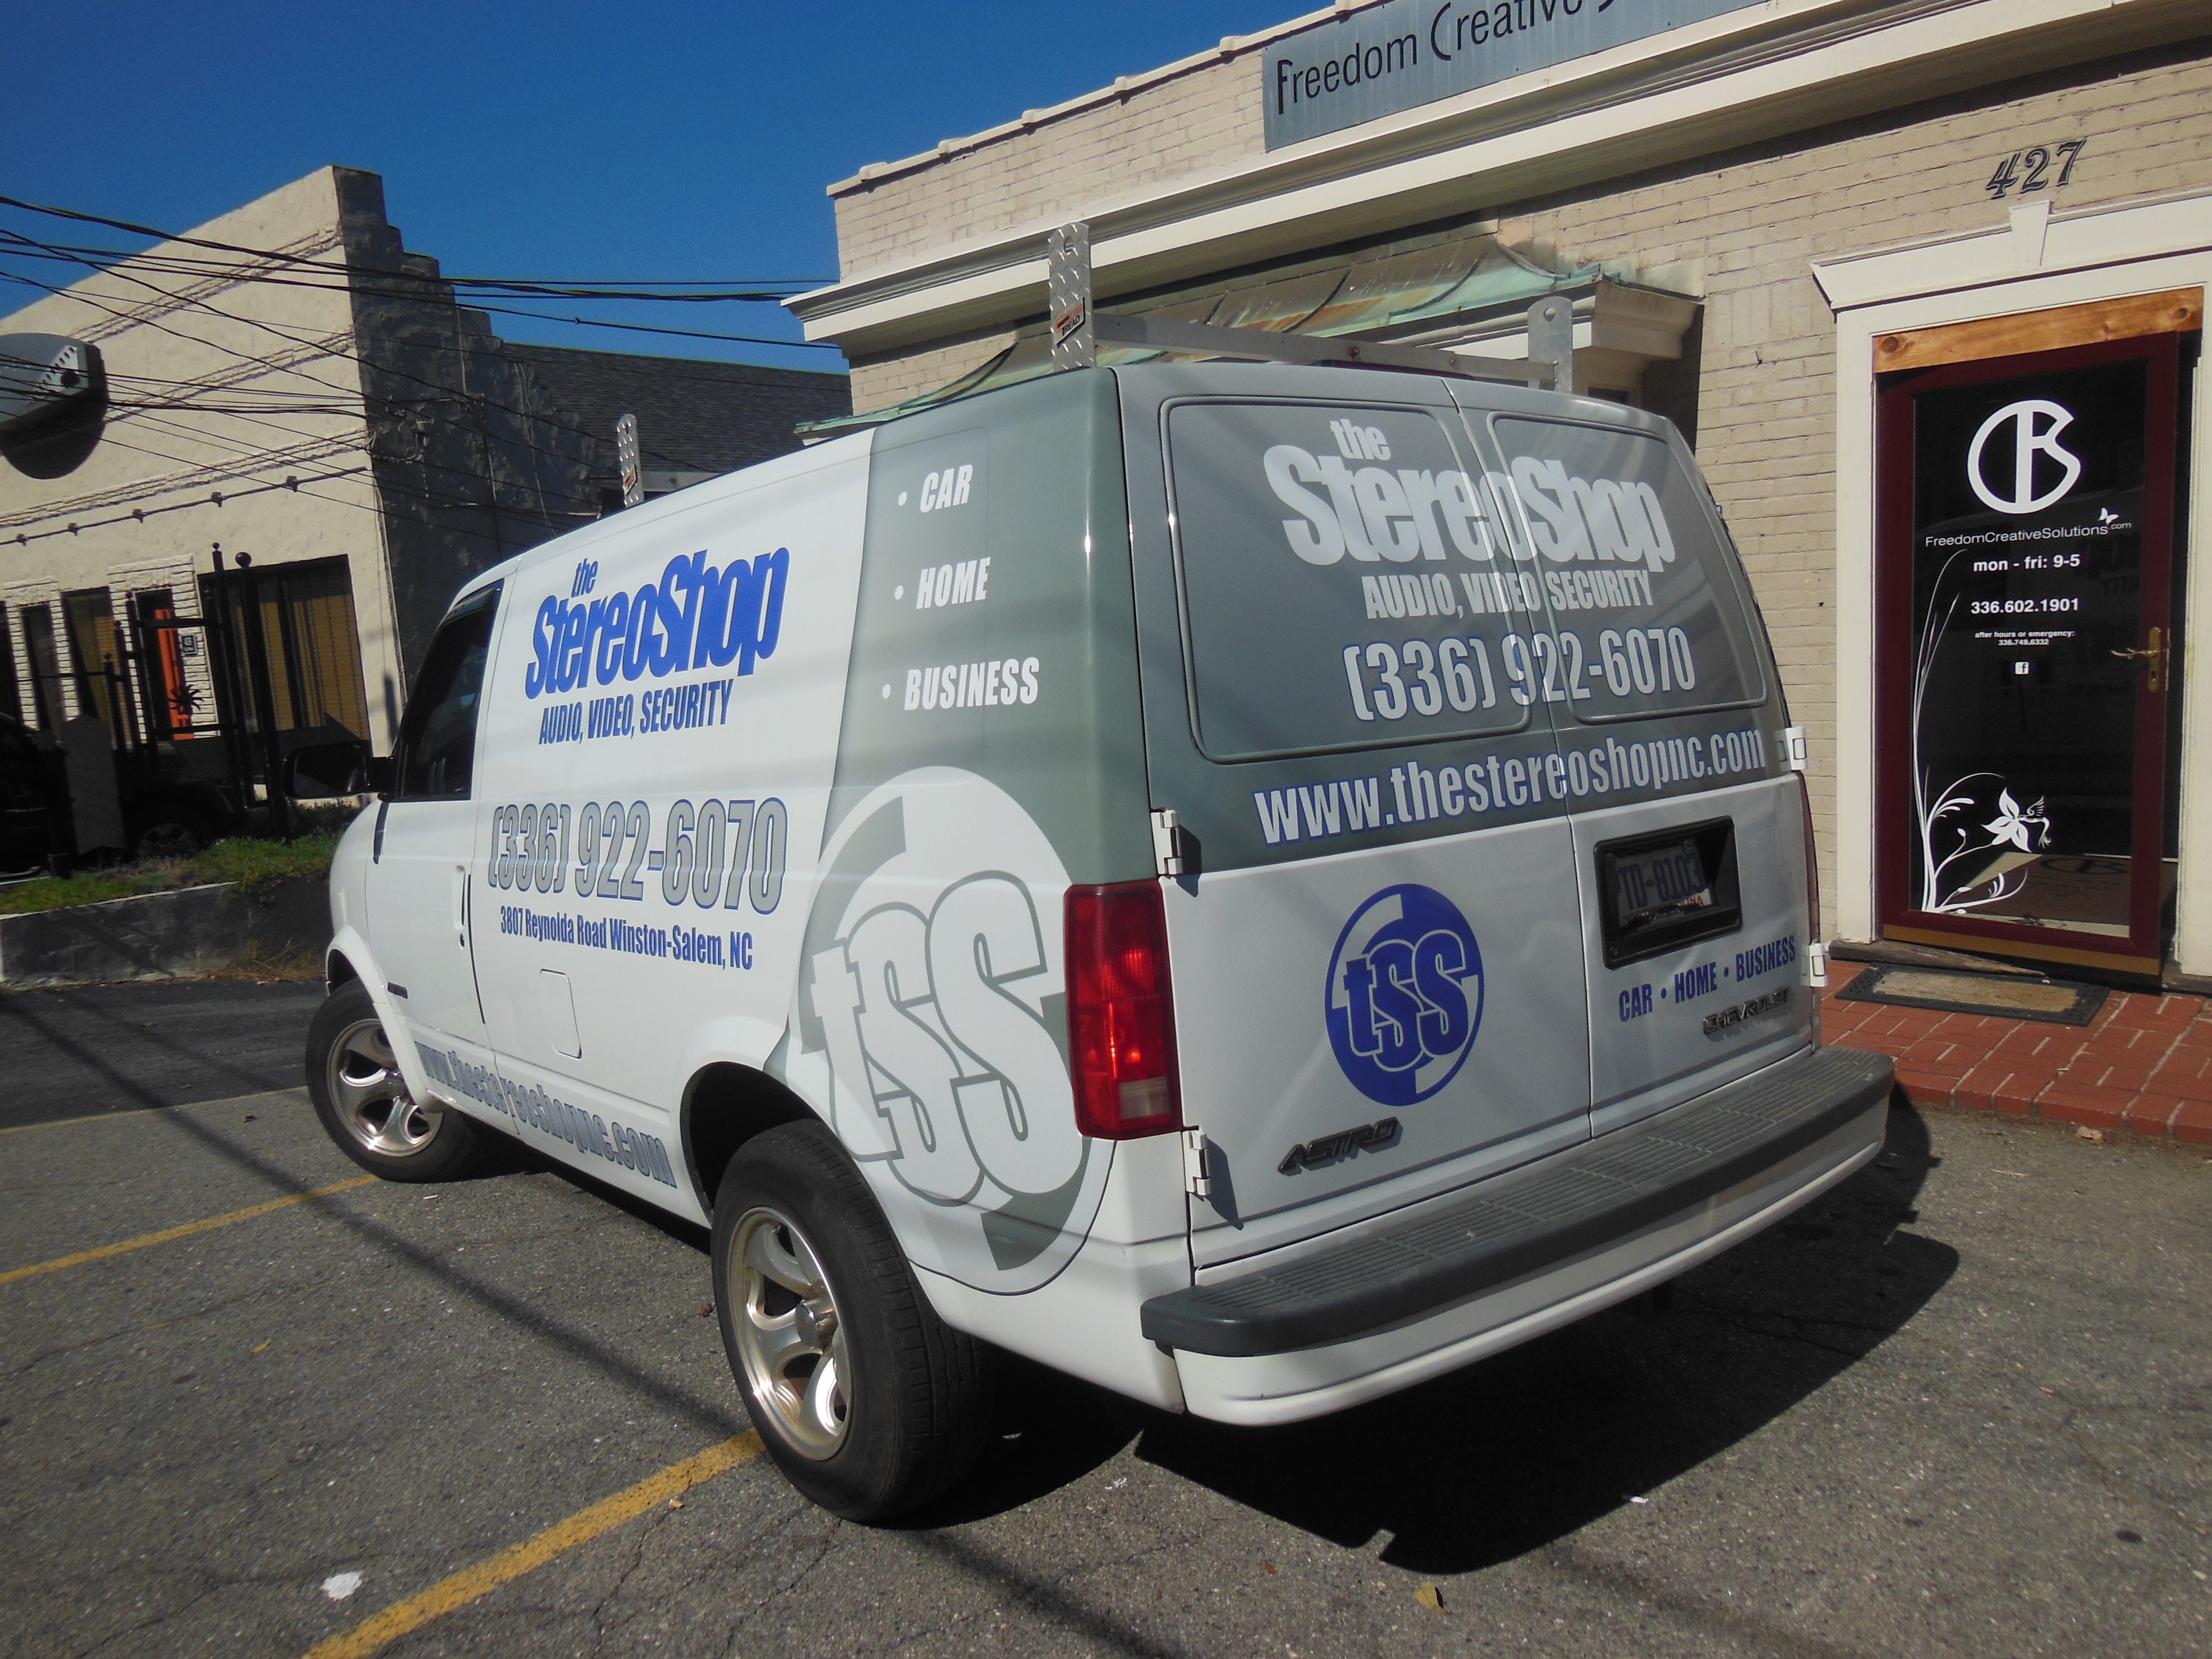 One Of Our Favorite Window Perf Jobs Windowperf Perforated Vinyl Vehicle Graphics Wrap Car Wrap Car Cool Cars